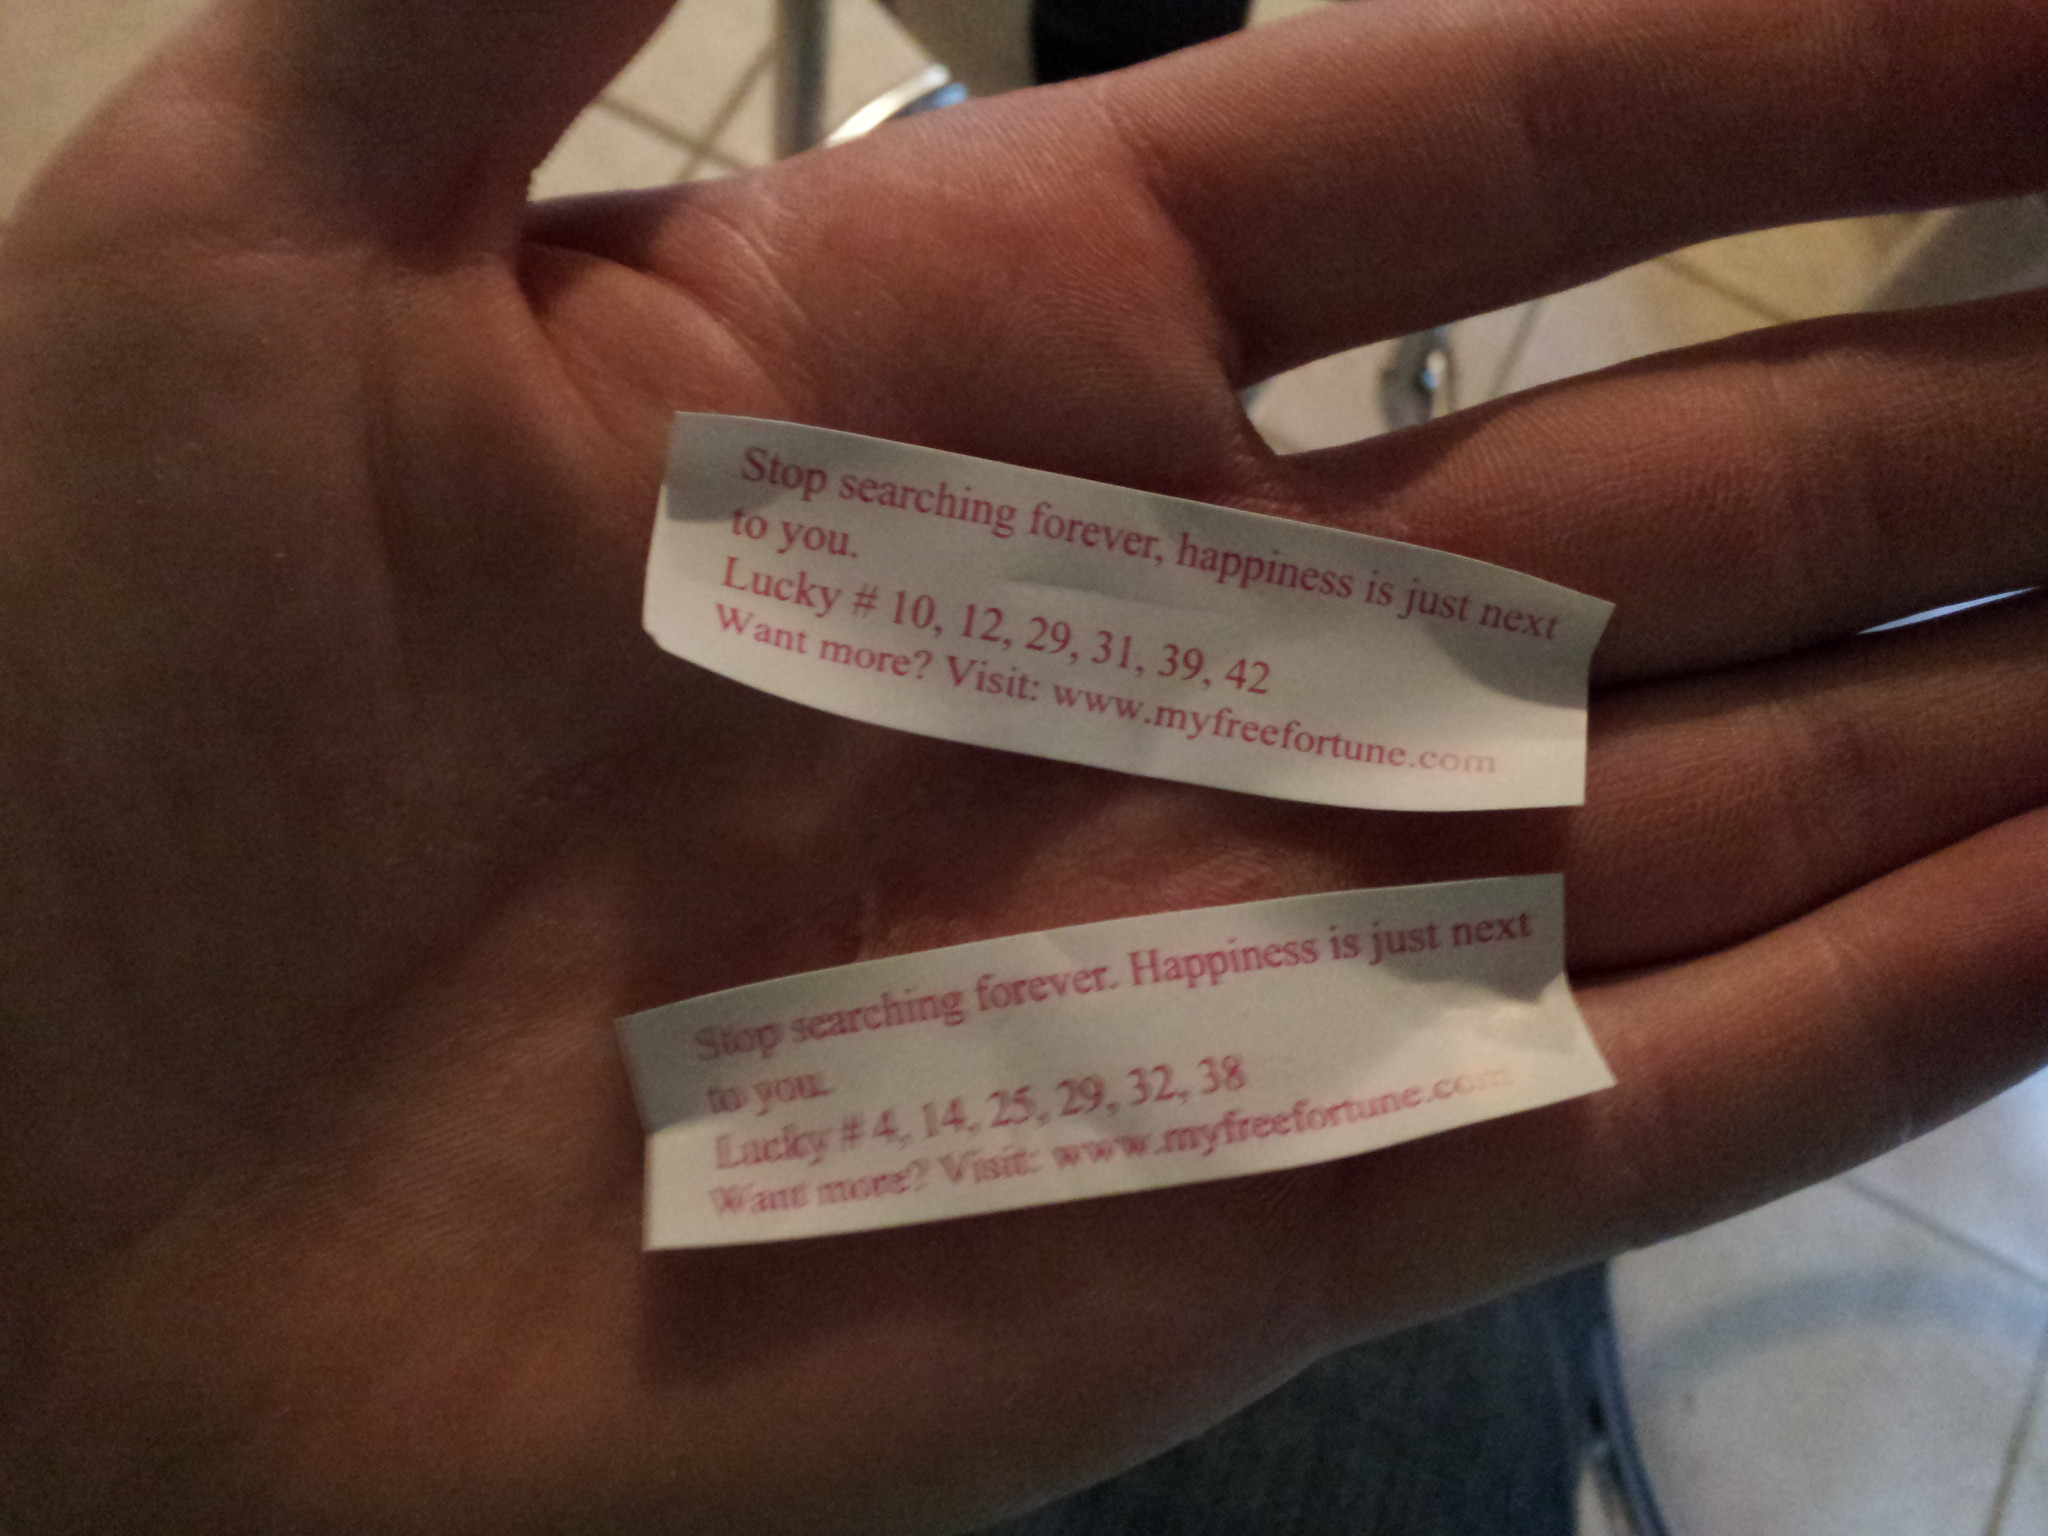 so the girlfriend and i got some Chinese food the other day and checked our fortunes...